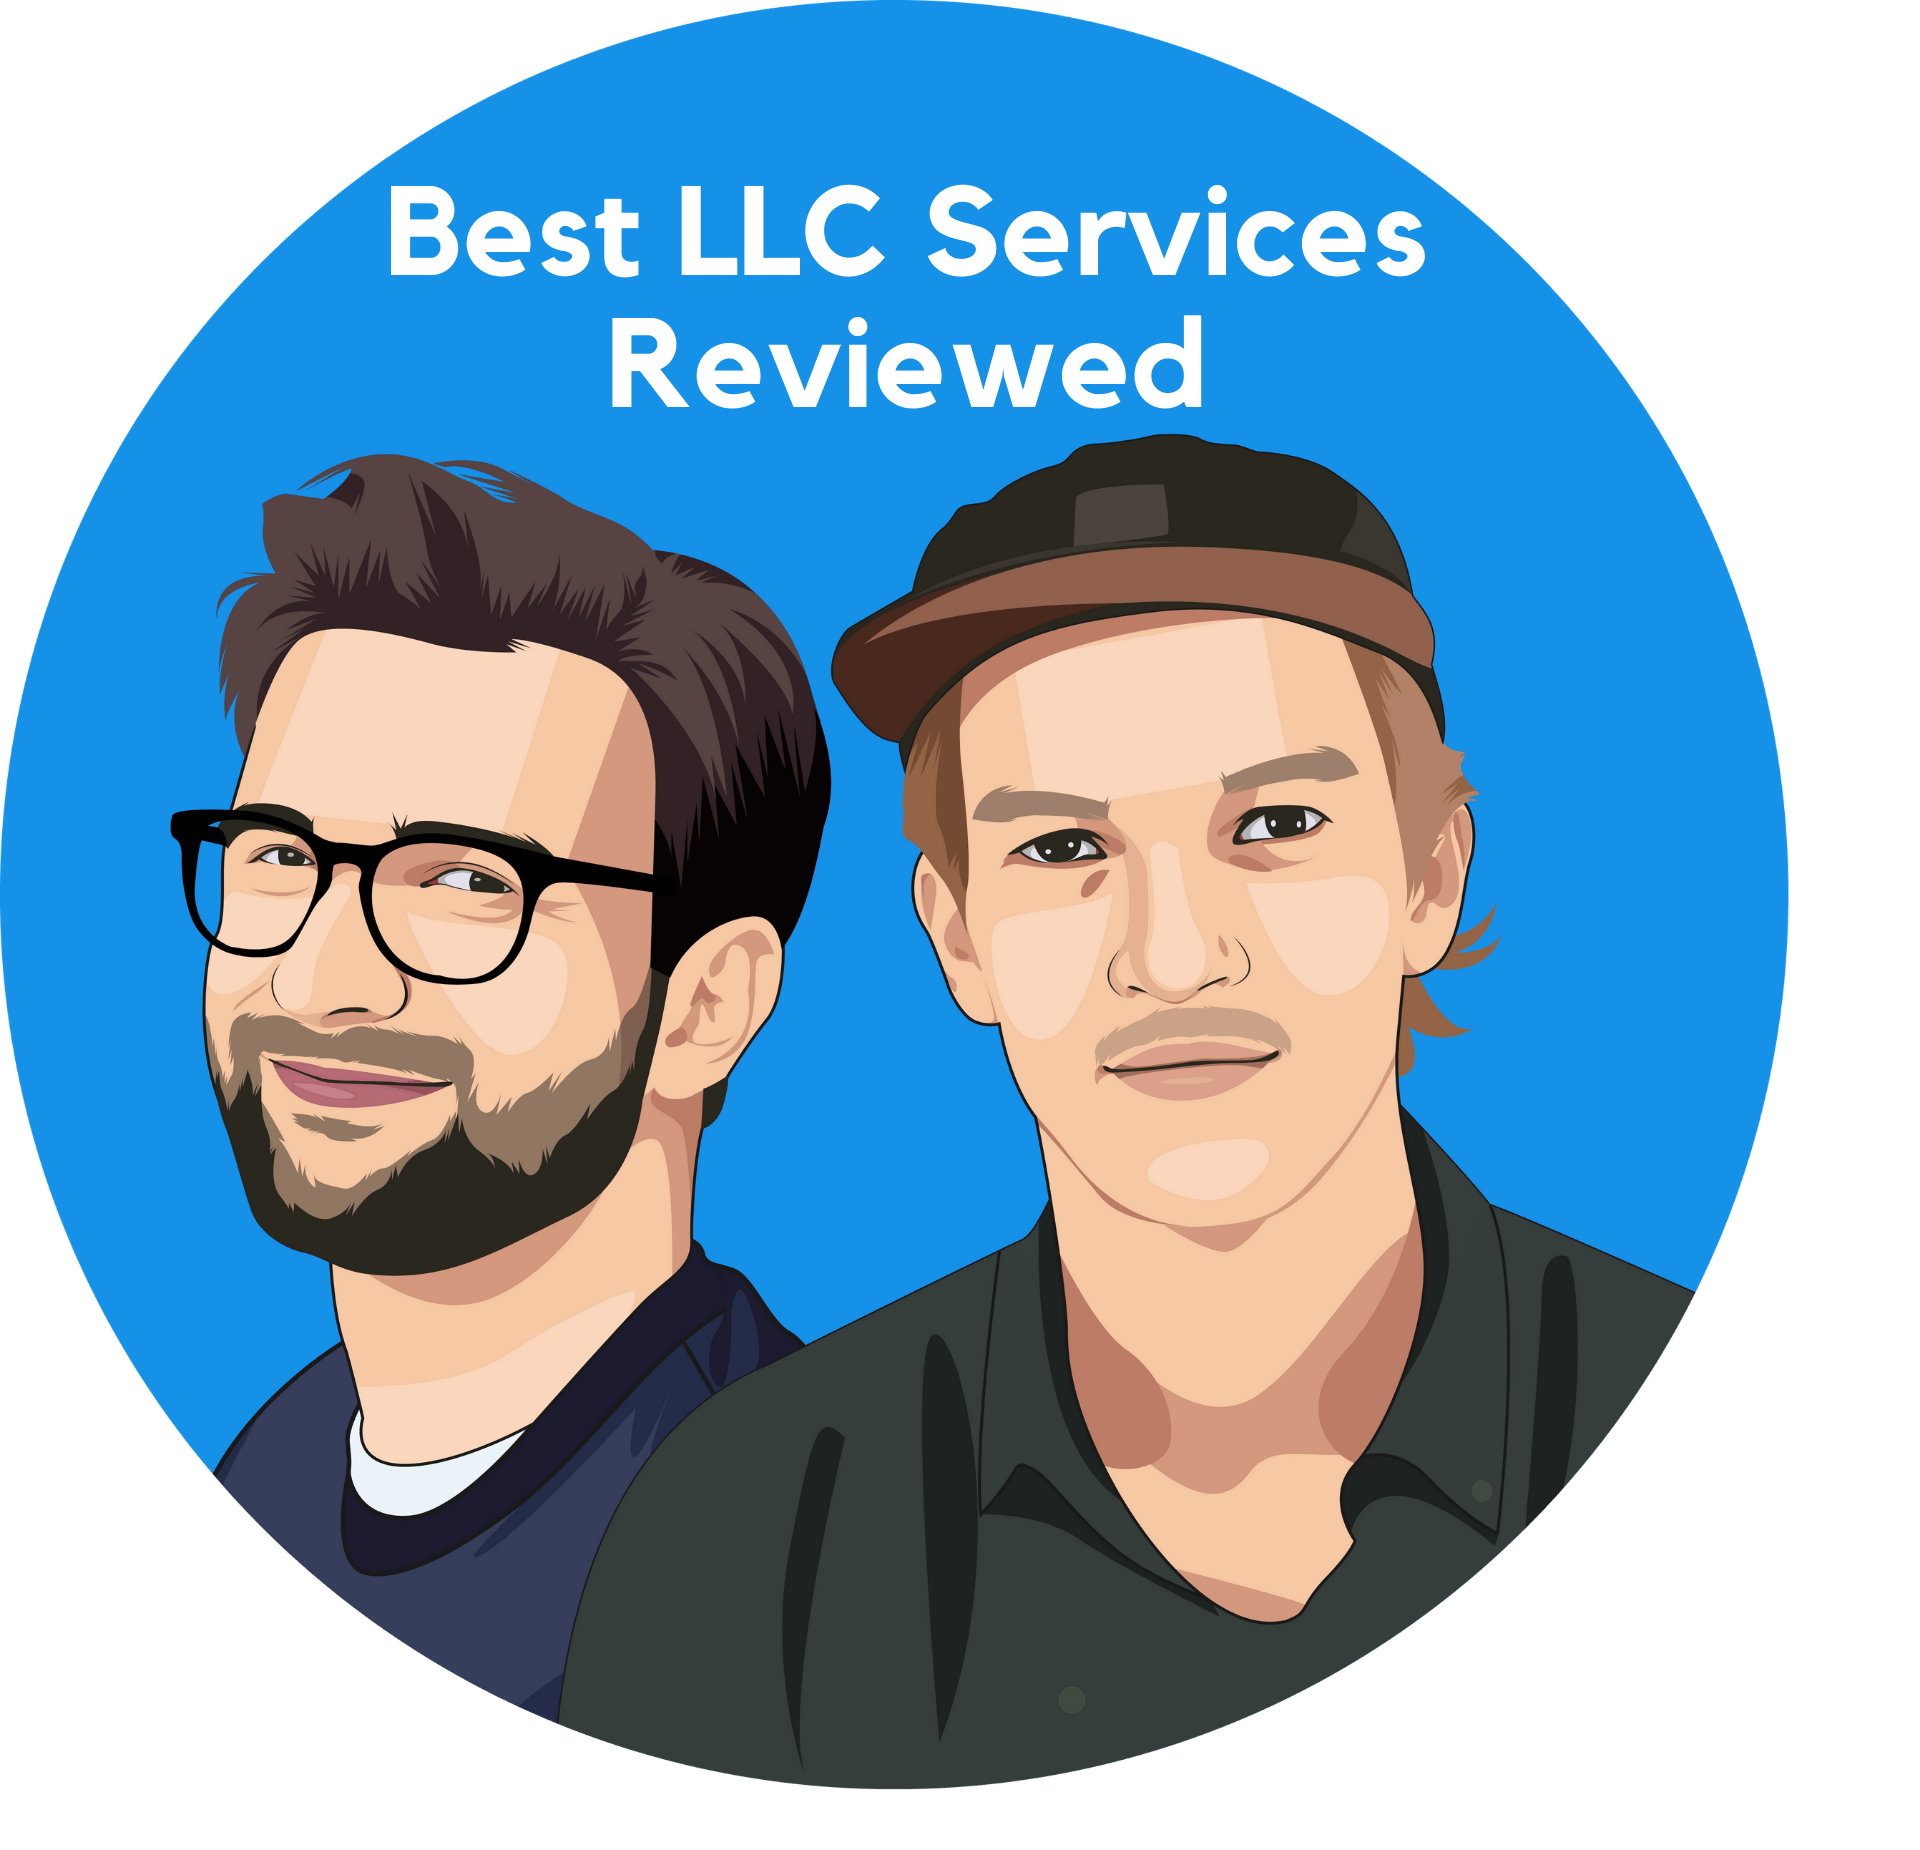 Best LLC Services Reviewed